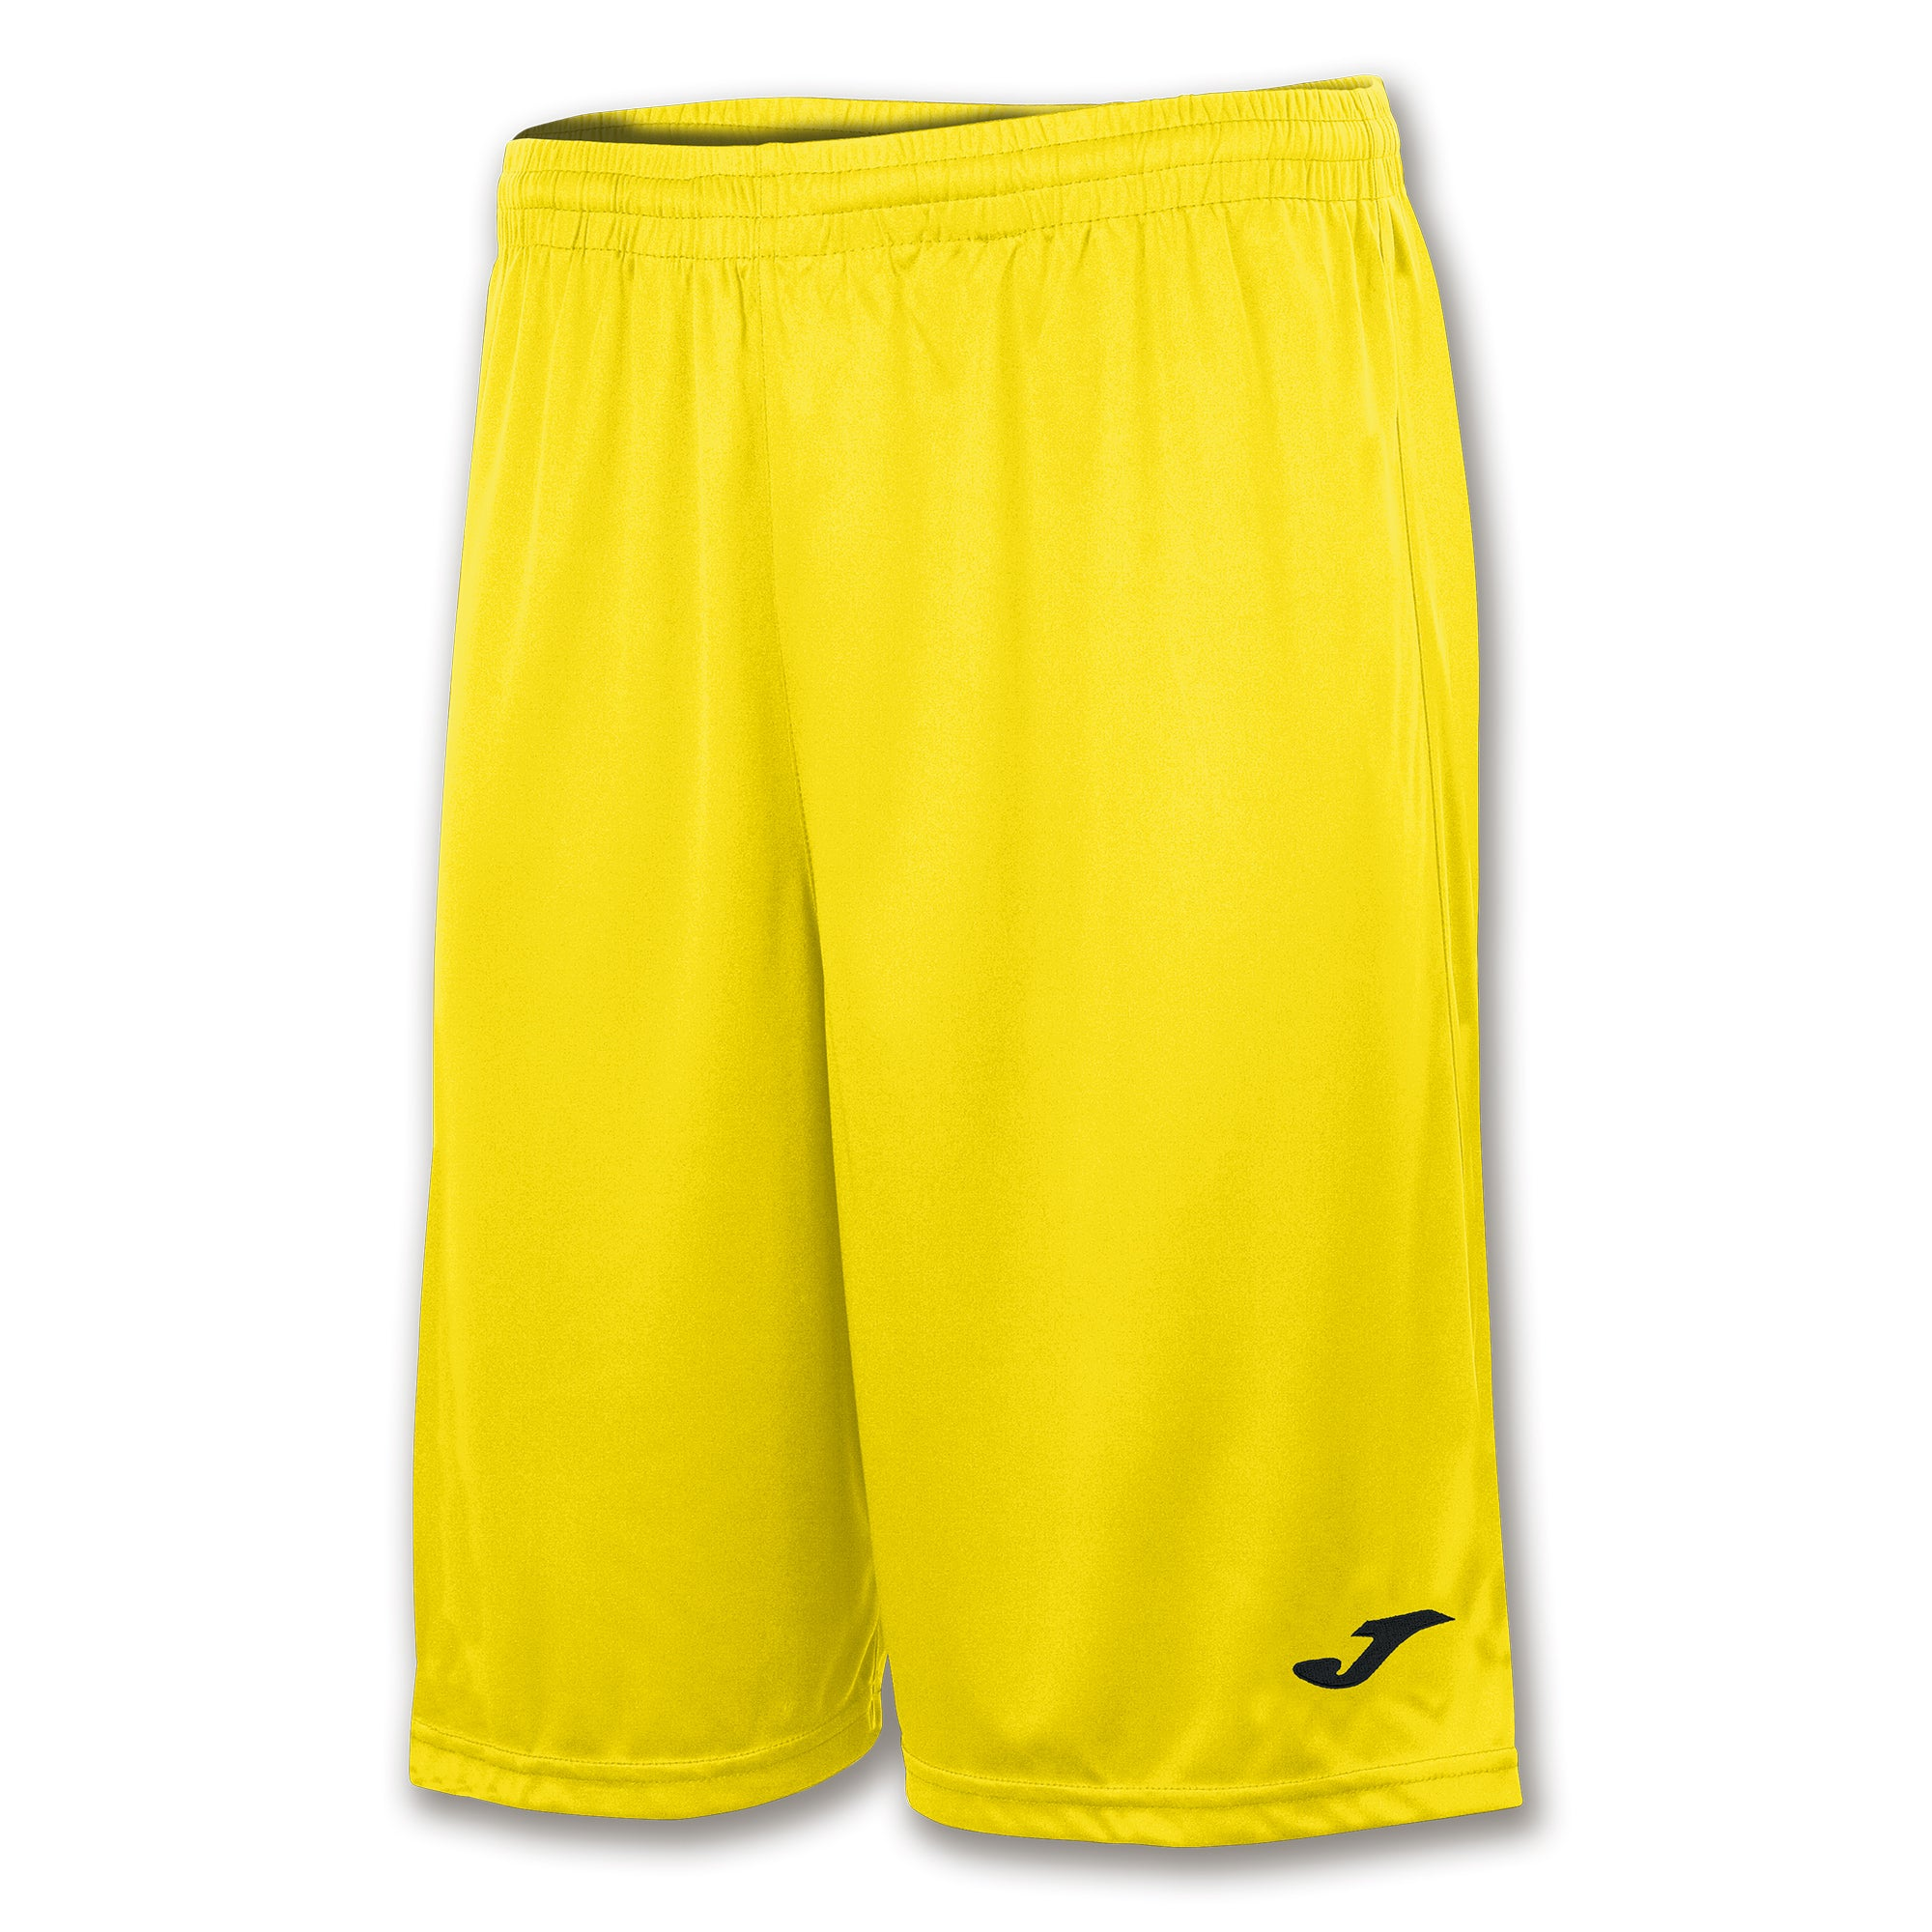 Teamwear - Joma Nobel Long Shorts - Yellow - JO-101648-900